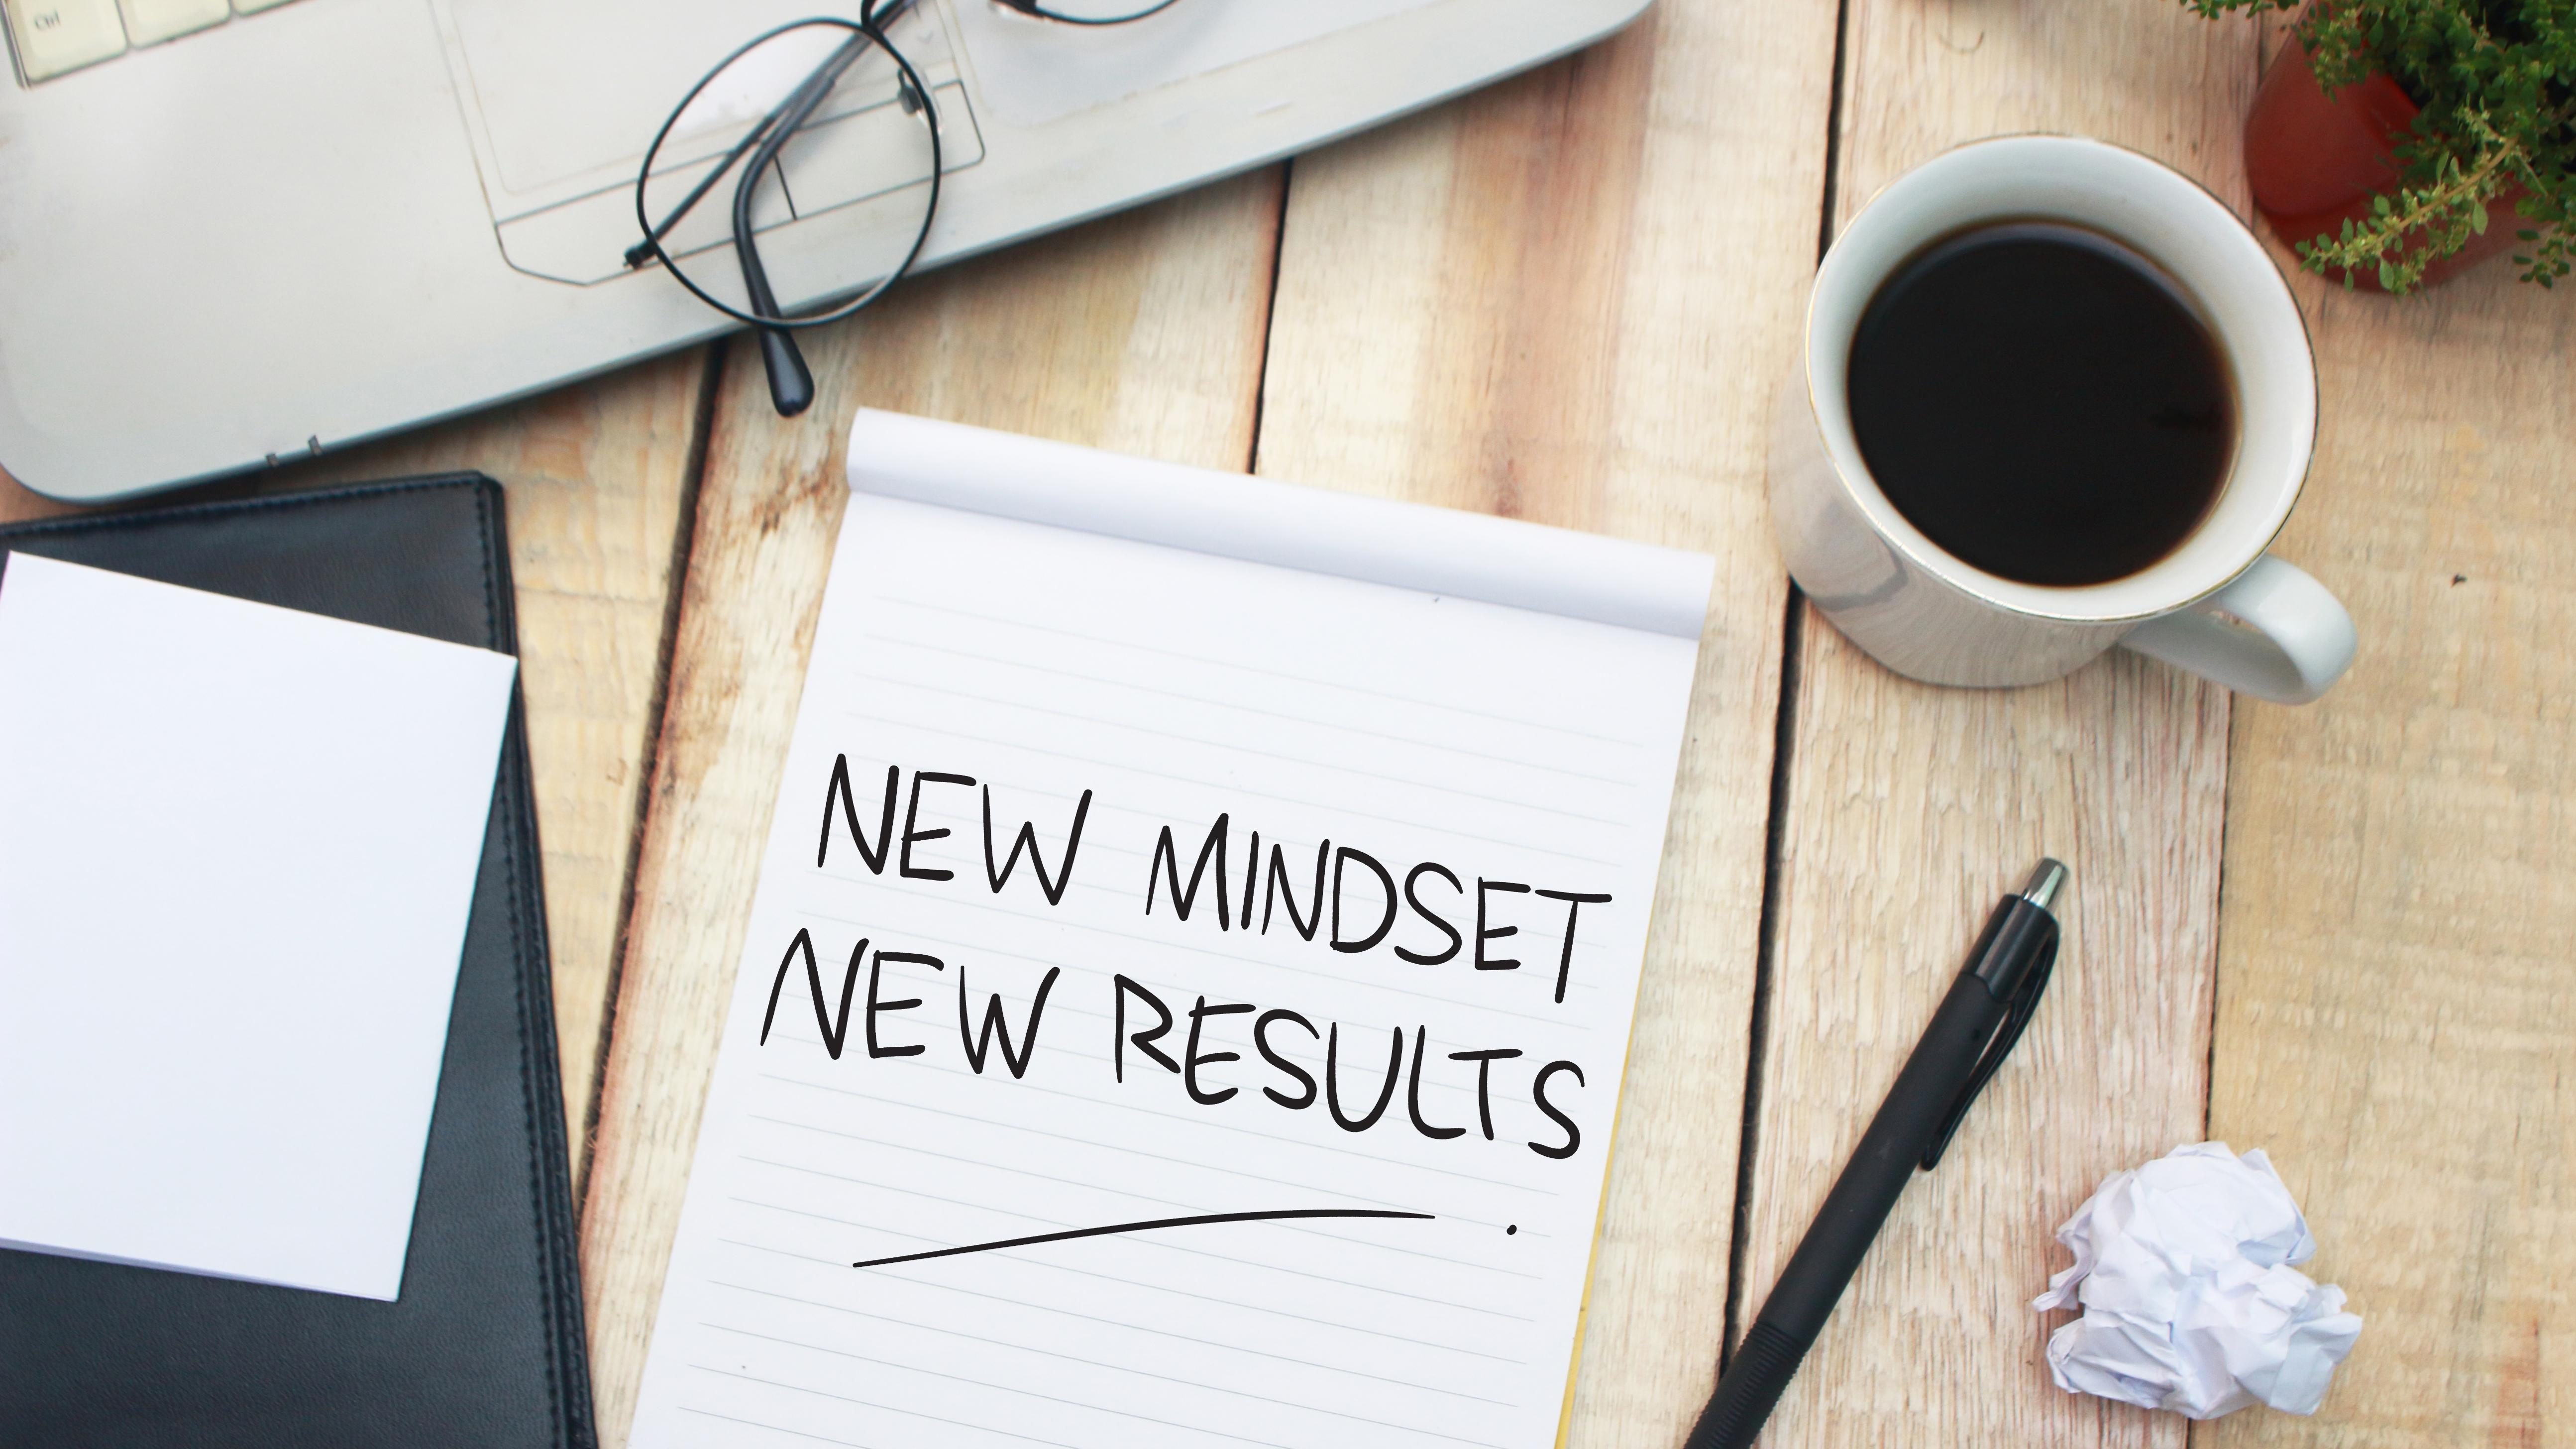 New mindset, new results (Image: Shutterstock)